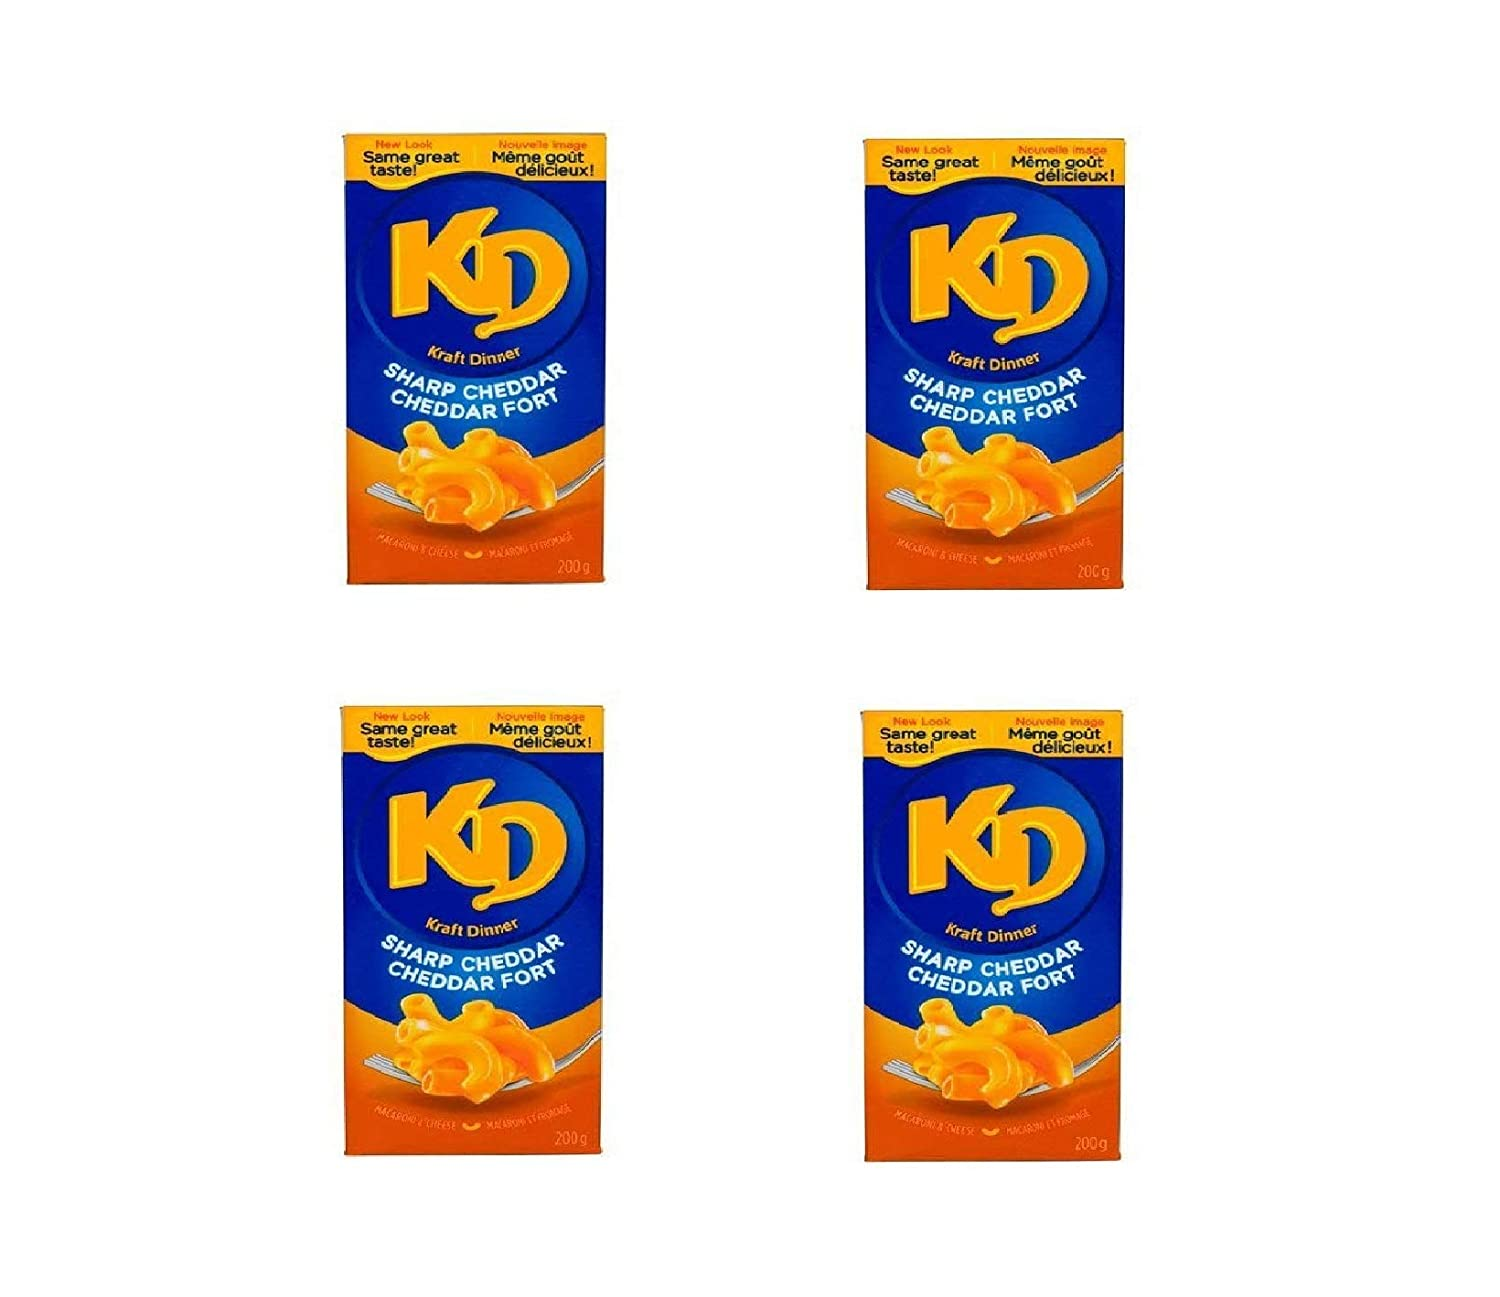 Kraft Dinner Sharp Cheddar 200g from Bombing Max 74% OFF new work 4-Pack Ca 7.05oz {Imported